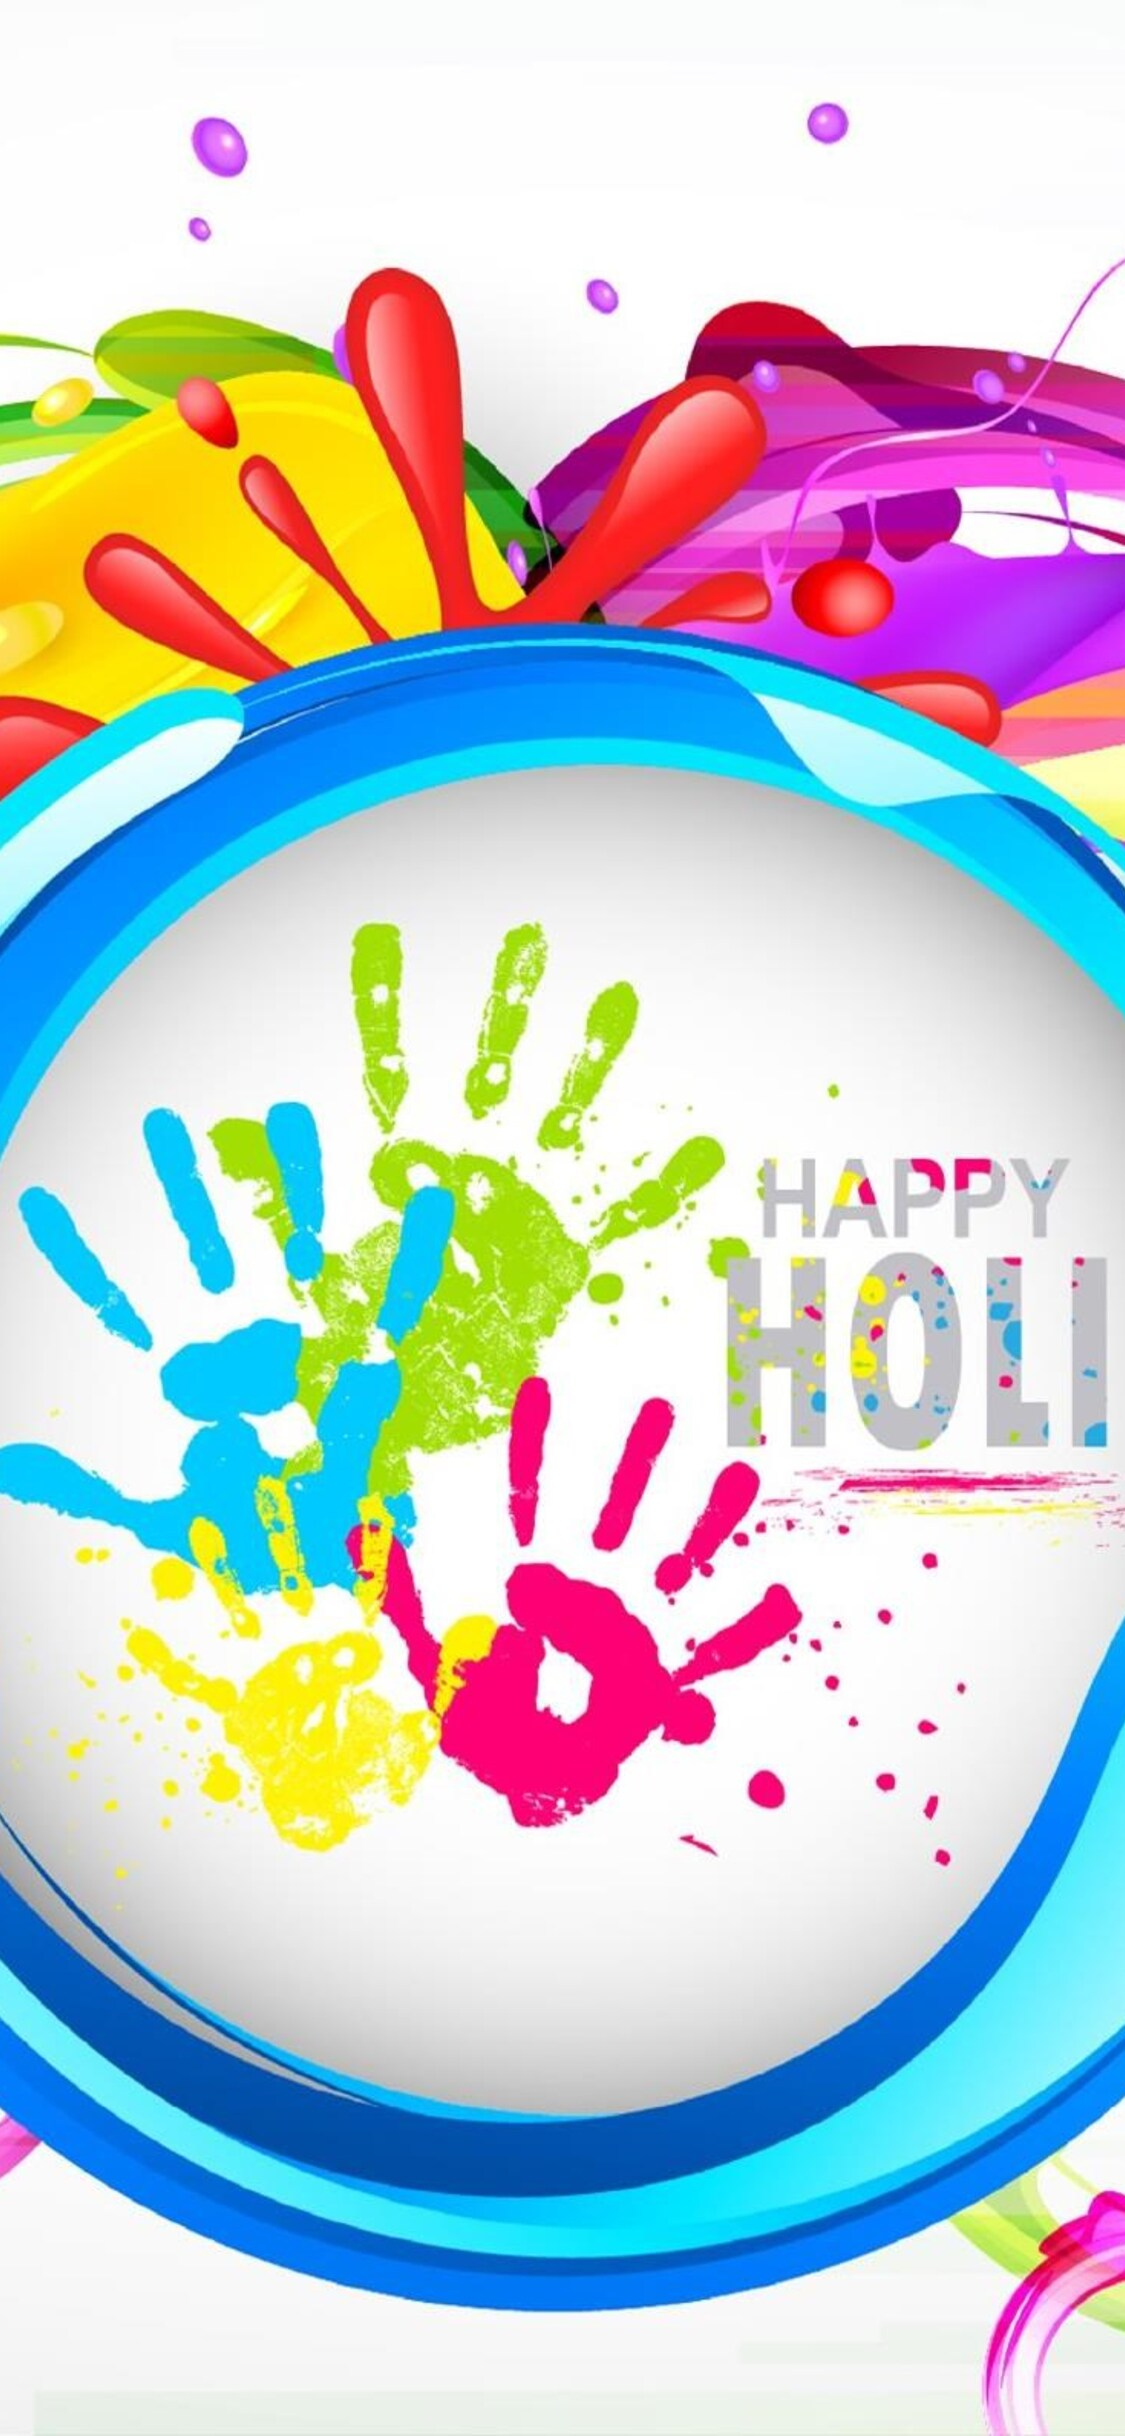 1125x2436 happy holi images iphone x,iphone 10 hd 4k wallpapers